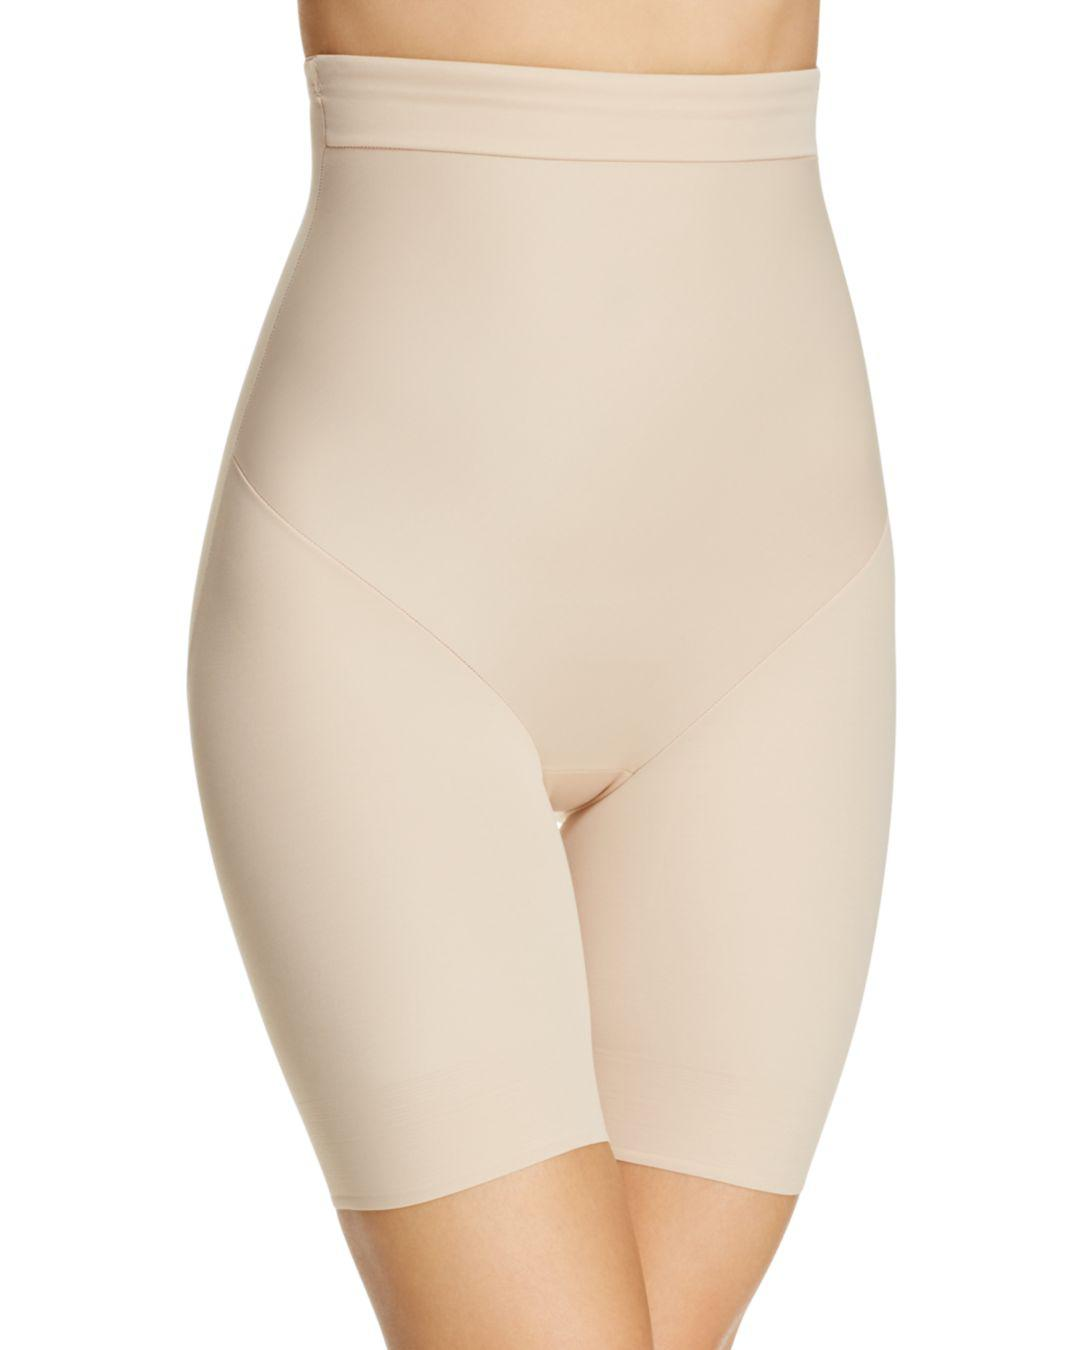 40a29939f23 Lyst - Tc Fine Intimates Cooling Effect Extra Firm Hi-waist Thigh ...